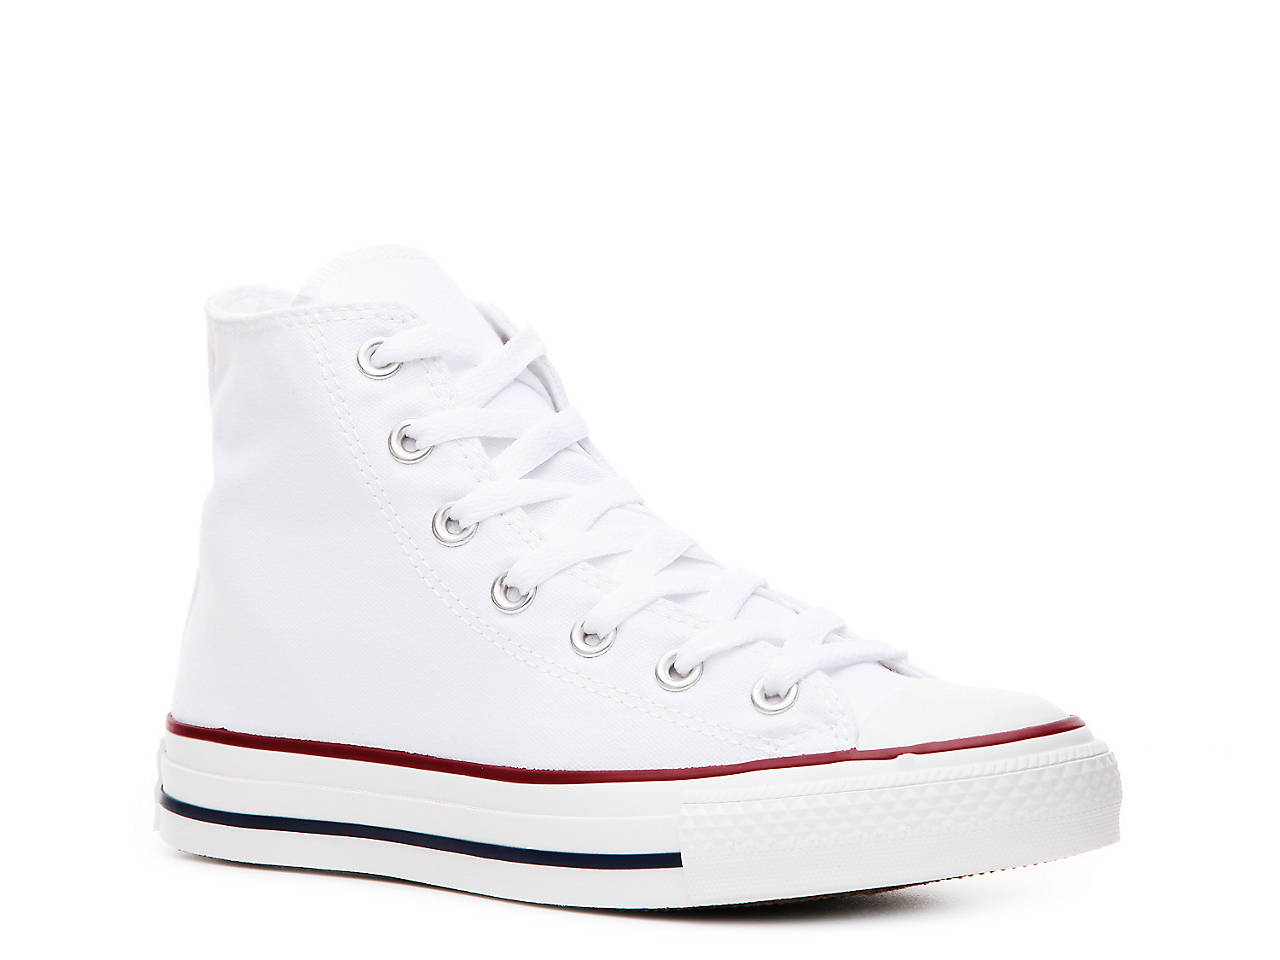 a3f637afd1a8 Converse Chuck Taylor All Star High-Top Sneaker - Women s Women s ...